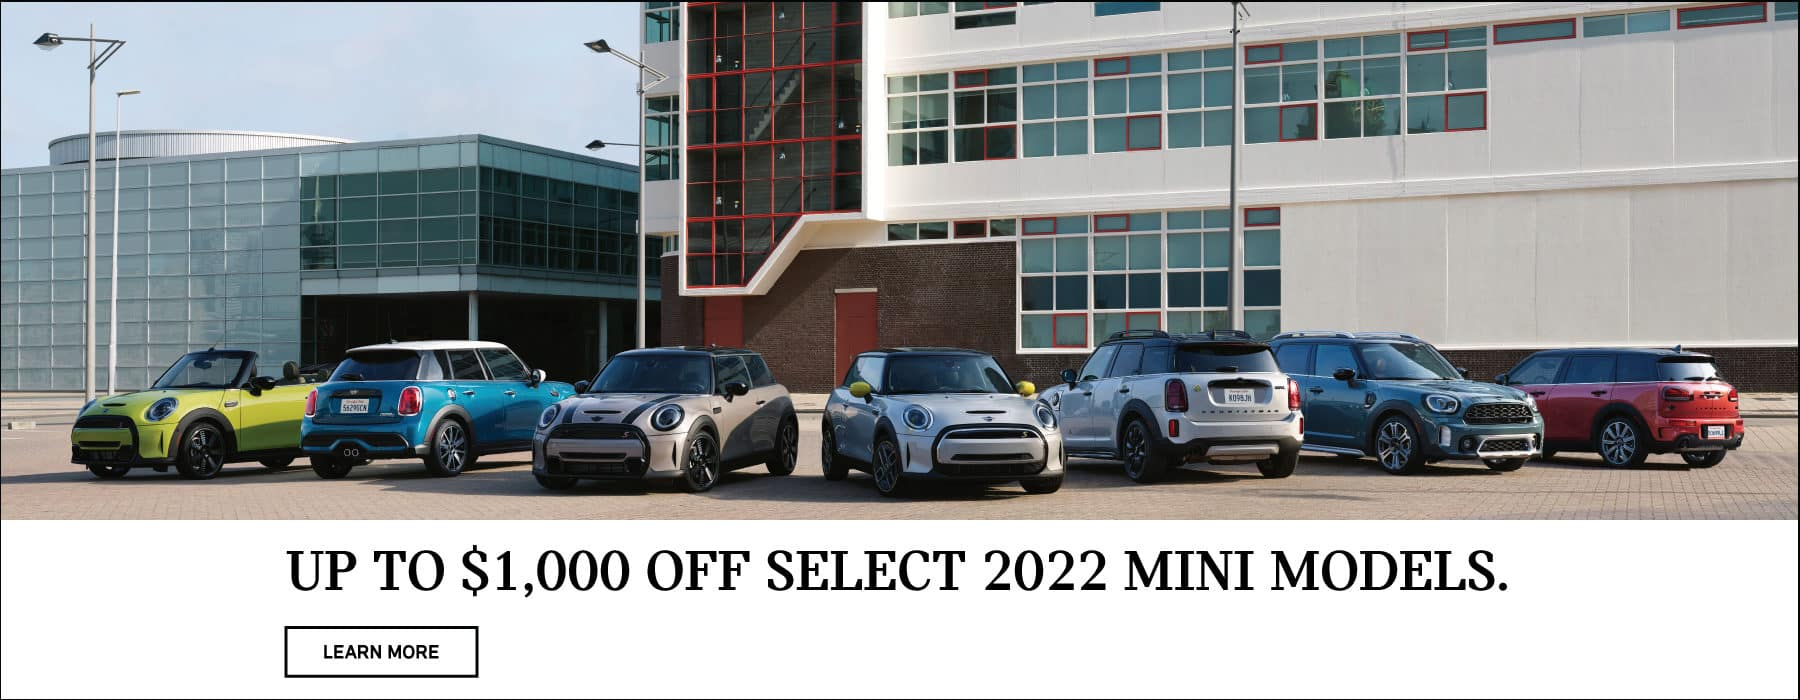 Get up to $1,000 off select 2022 models.